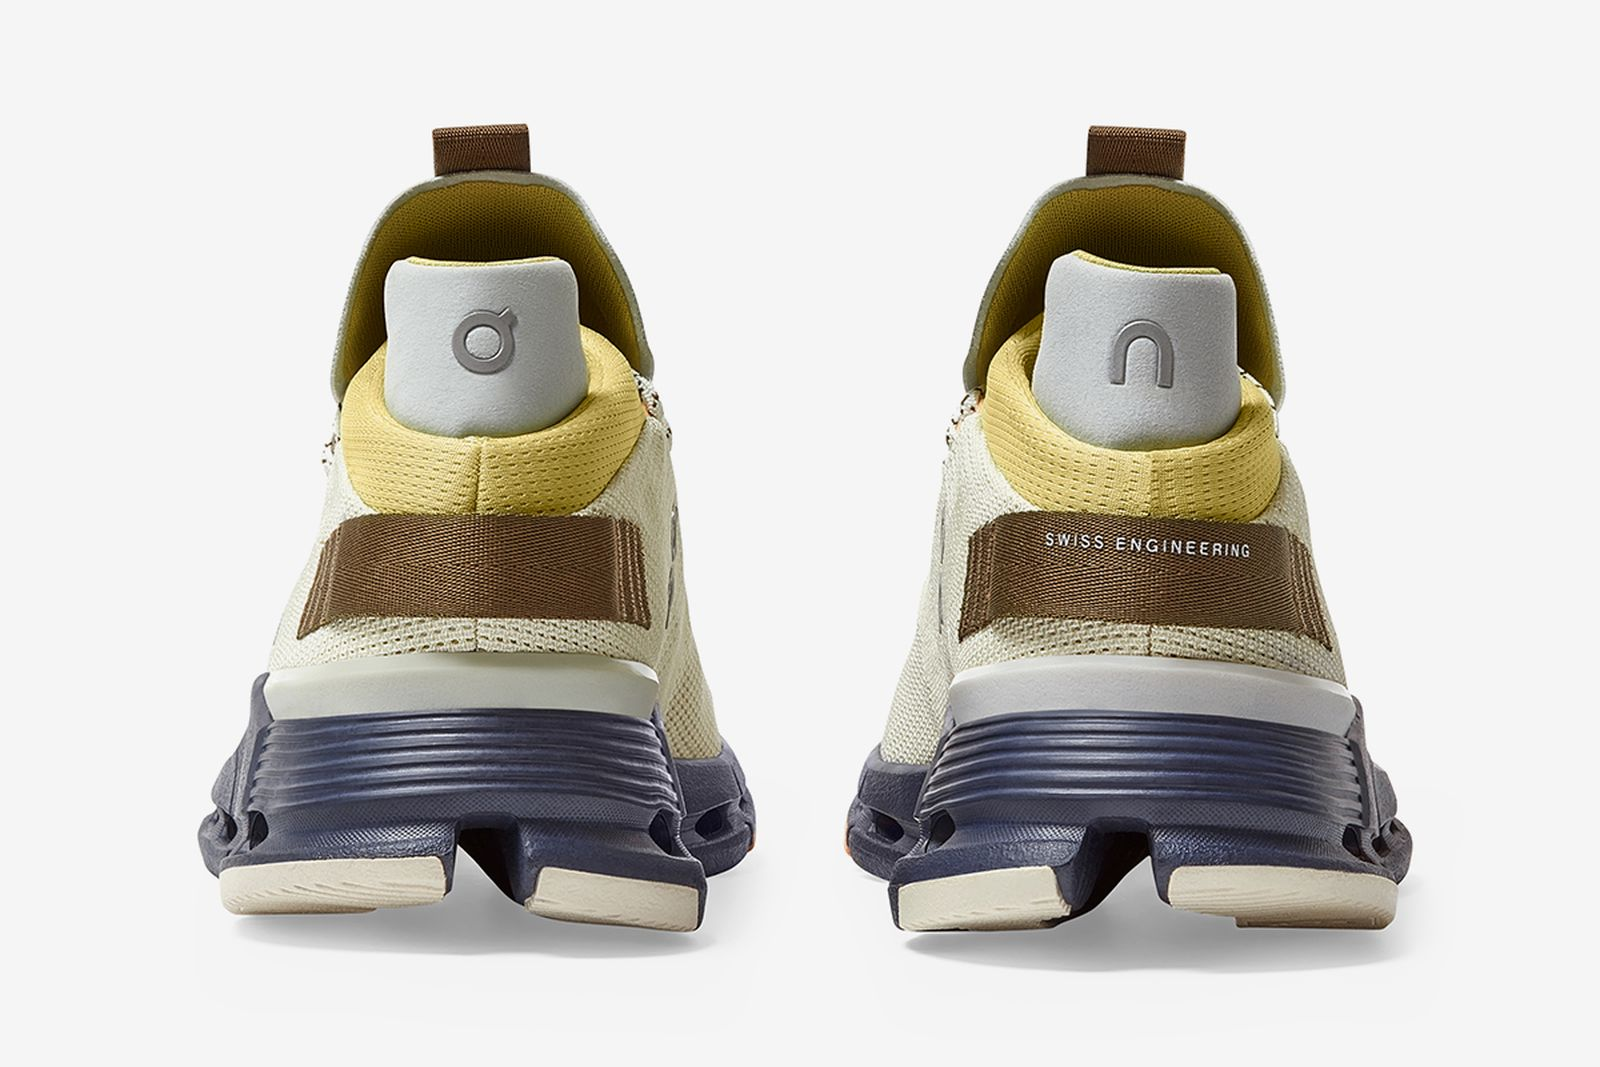 daily-sneaker-news-03-31-2021-1-06